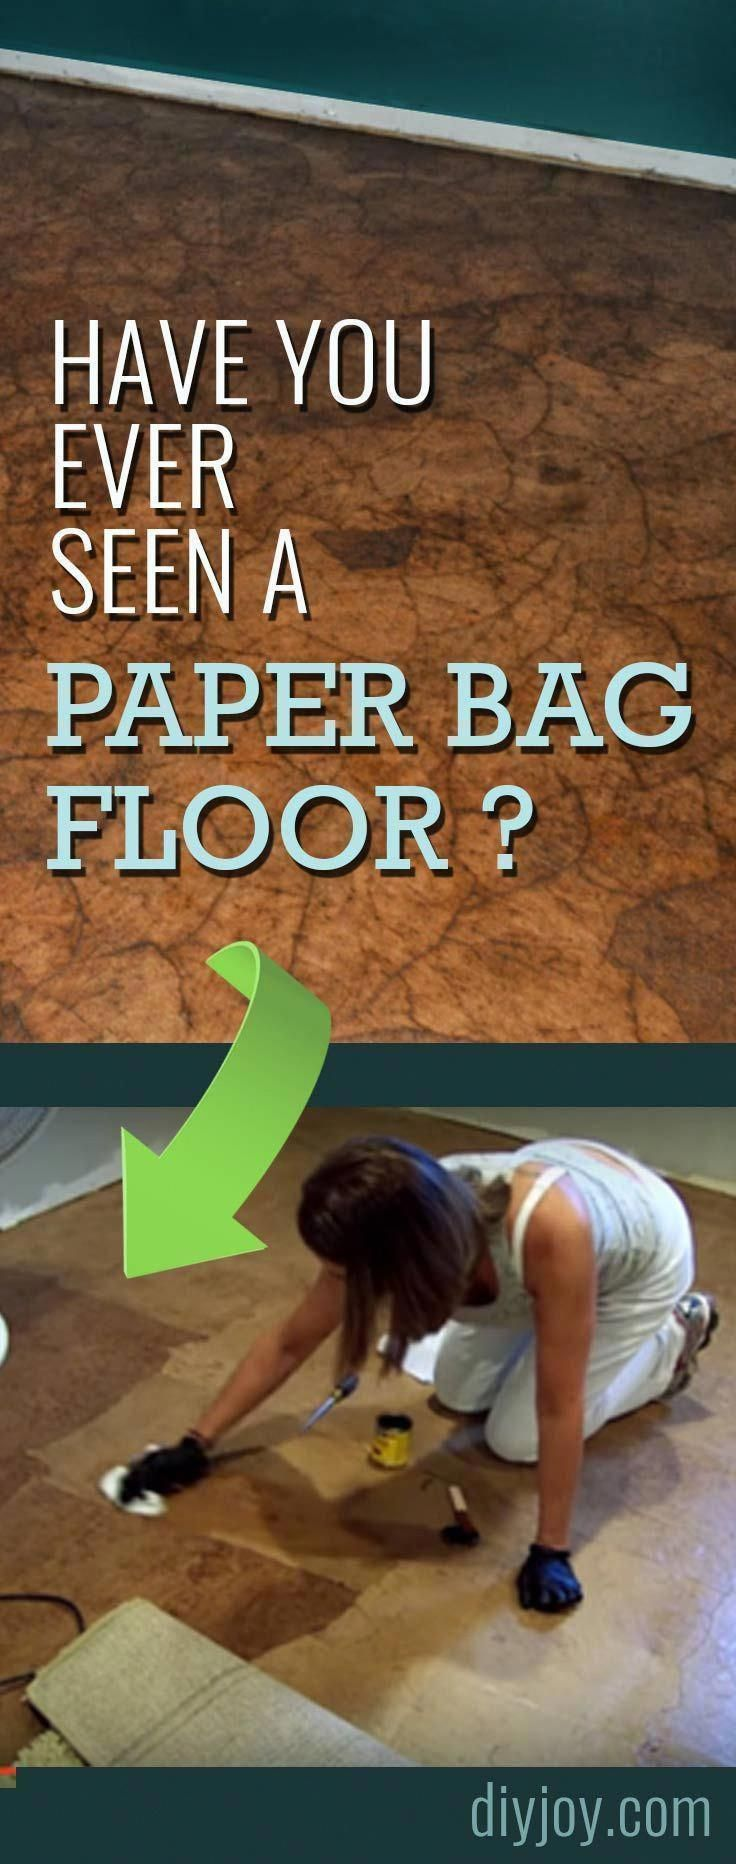 DIY Paper Bag Floor For Inexpensive Home Improvement on A Budget - Video Tutorial and Instructions #homeimprovementprojects #homeimprovementonabudgetorganizing #interiordecoronabudgetcouch #paperbagflooring DIY Paper Bag Floor For Inexpensive Home Improvement on A Budget - Video Tutorial and Instructions #homeimprovementprojects #homeimprovementonabudgetorganizing #interiordecoronabudgetcouch #paperbagflooring